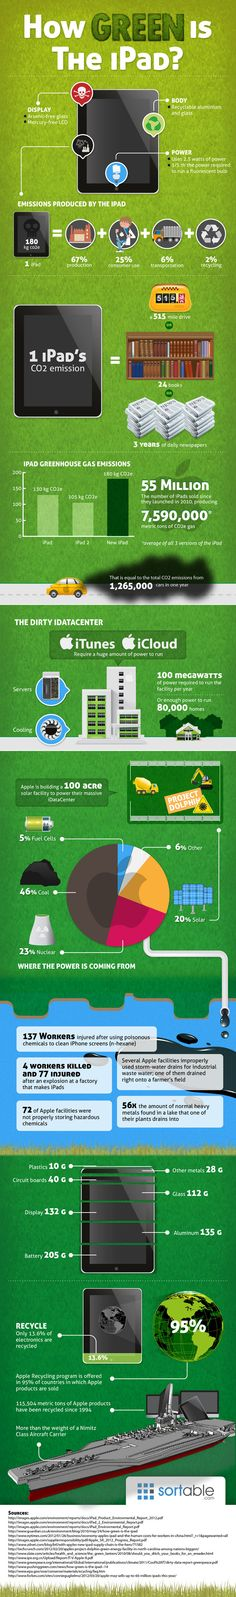 How Green is your iPad? (Infographic)